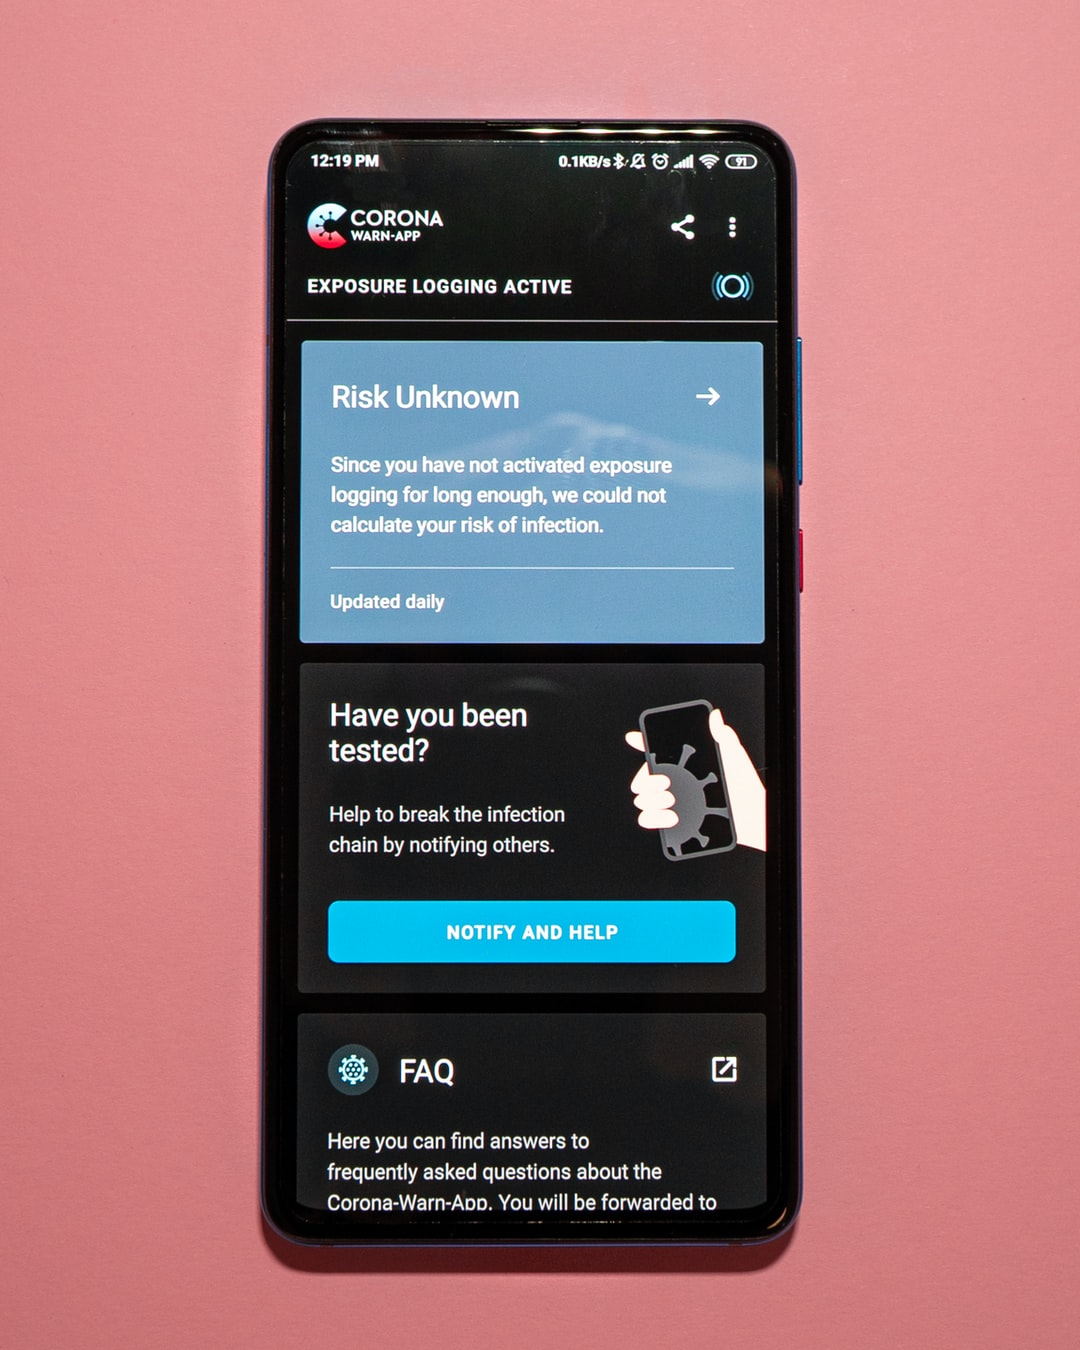 The official Corona App by the german government started on 16/06/2020. It enables Exposure Logging for Covid-19 cases all over the country. This is the Android version.